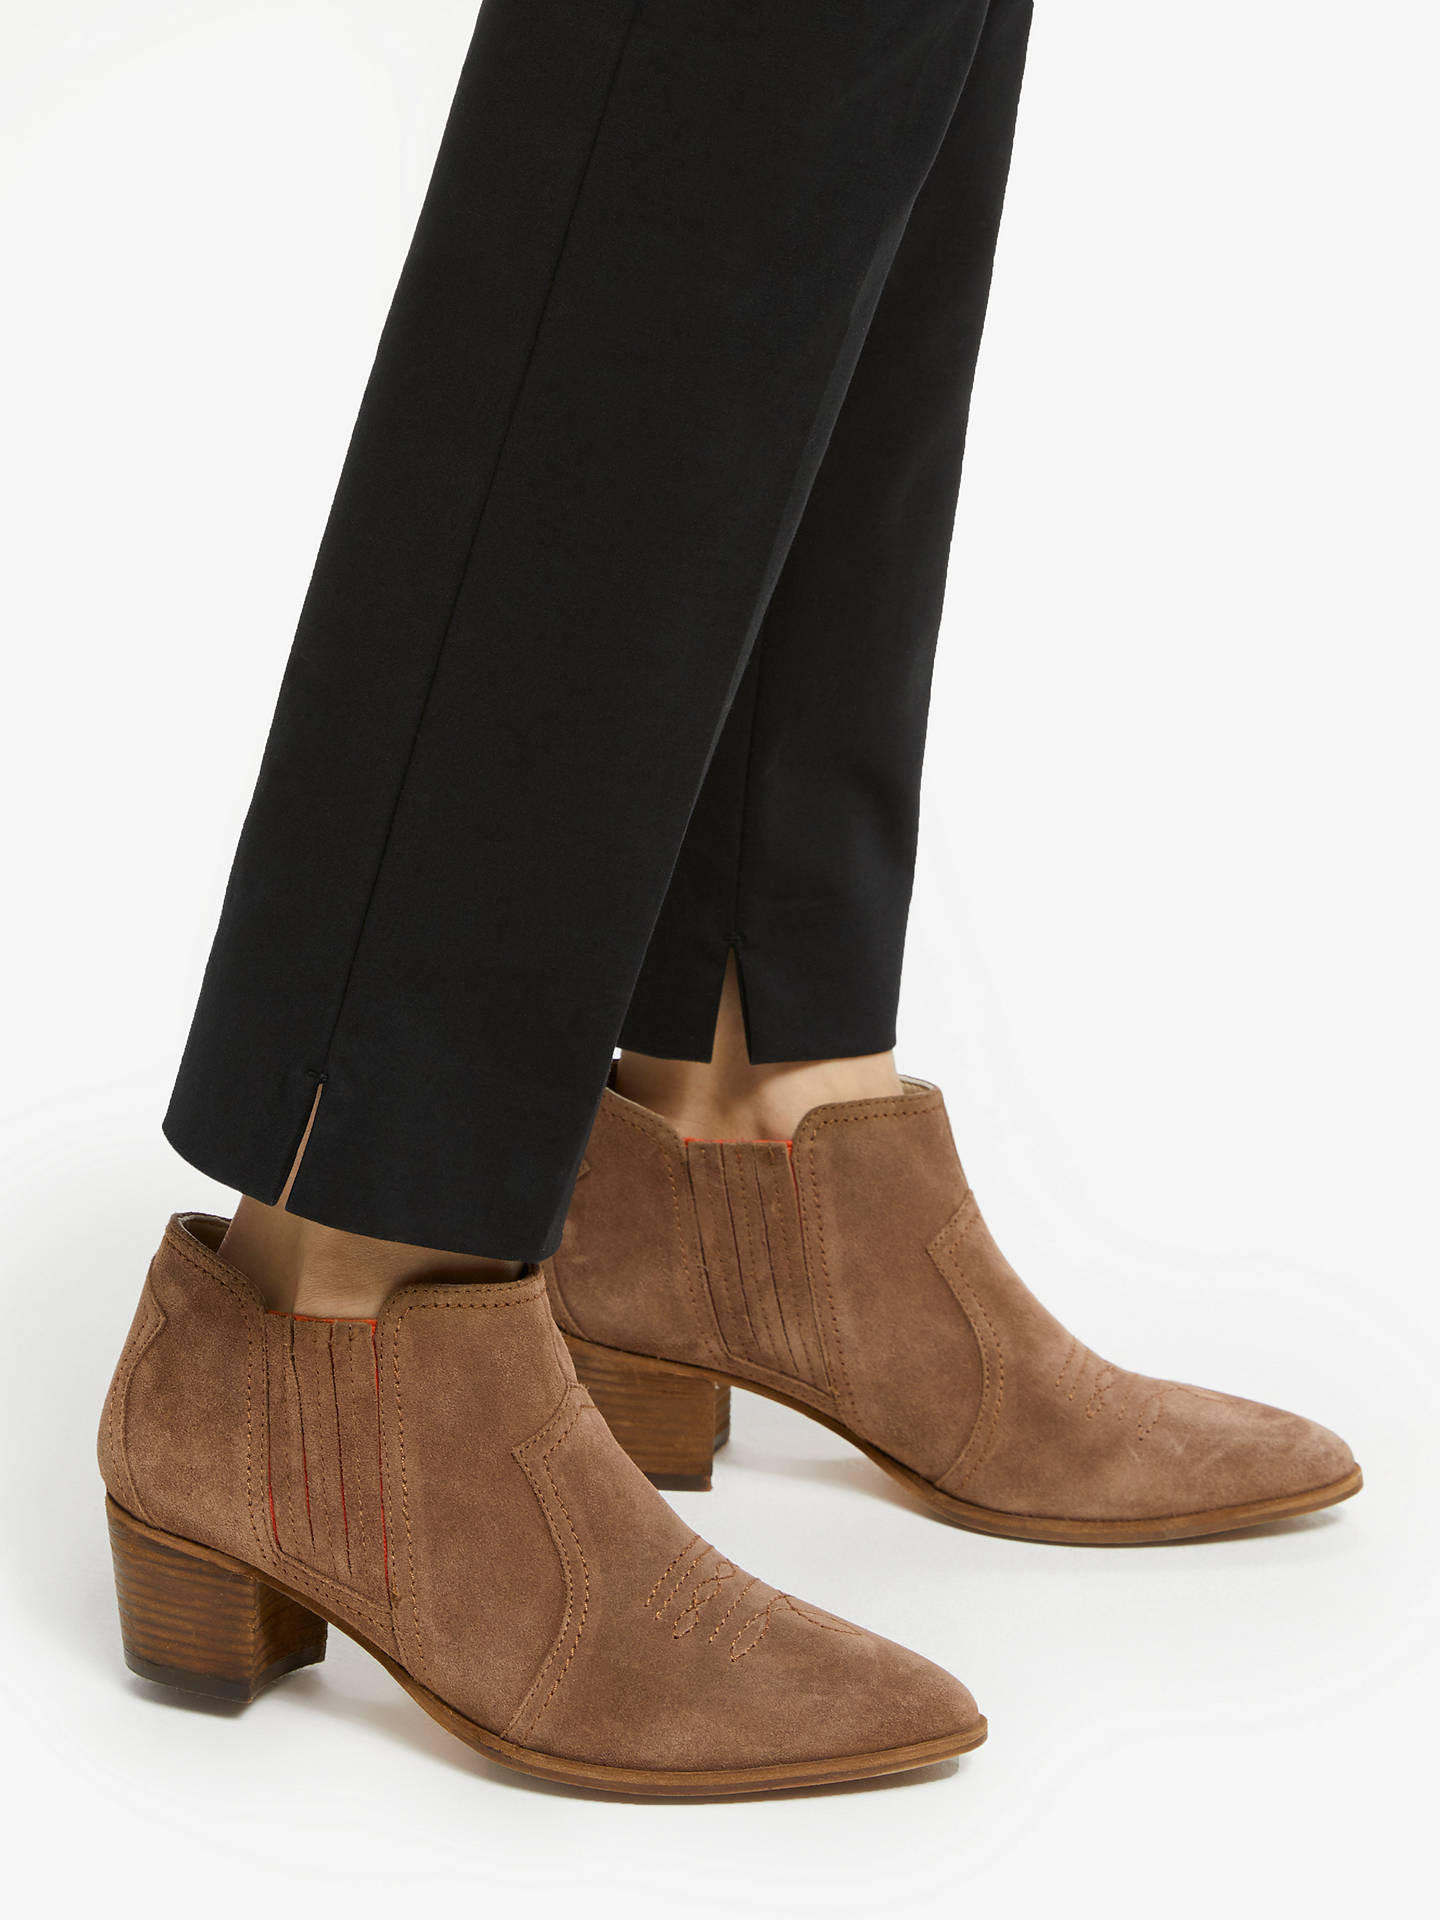 top-rated cheap authentic quality purchase original Boden Clifton Ankle Boots, Tan Suede at John Lewis & Partners